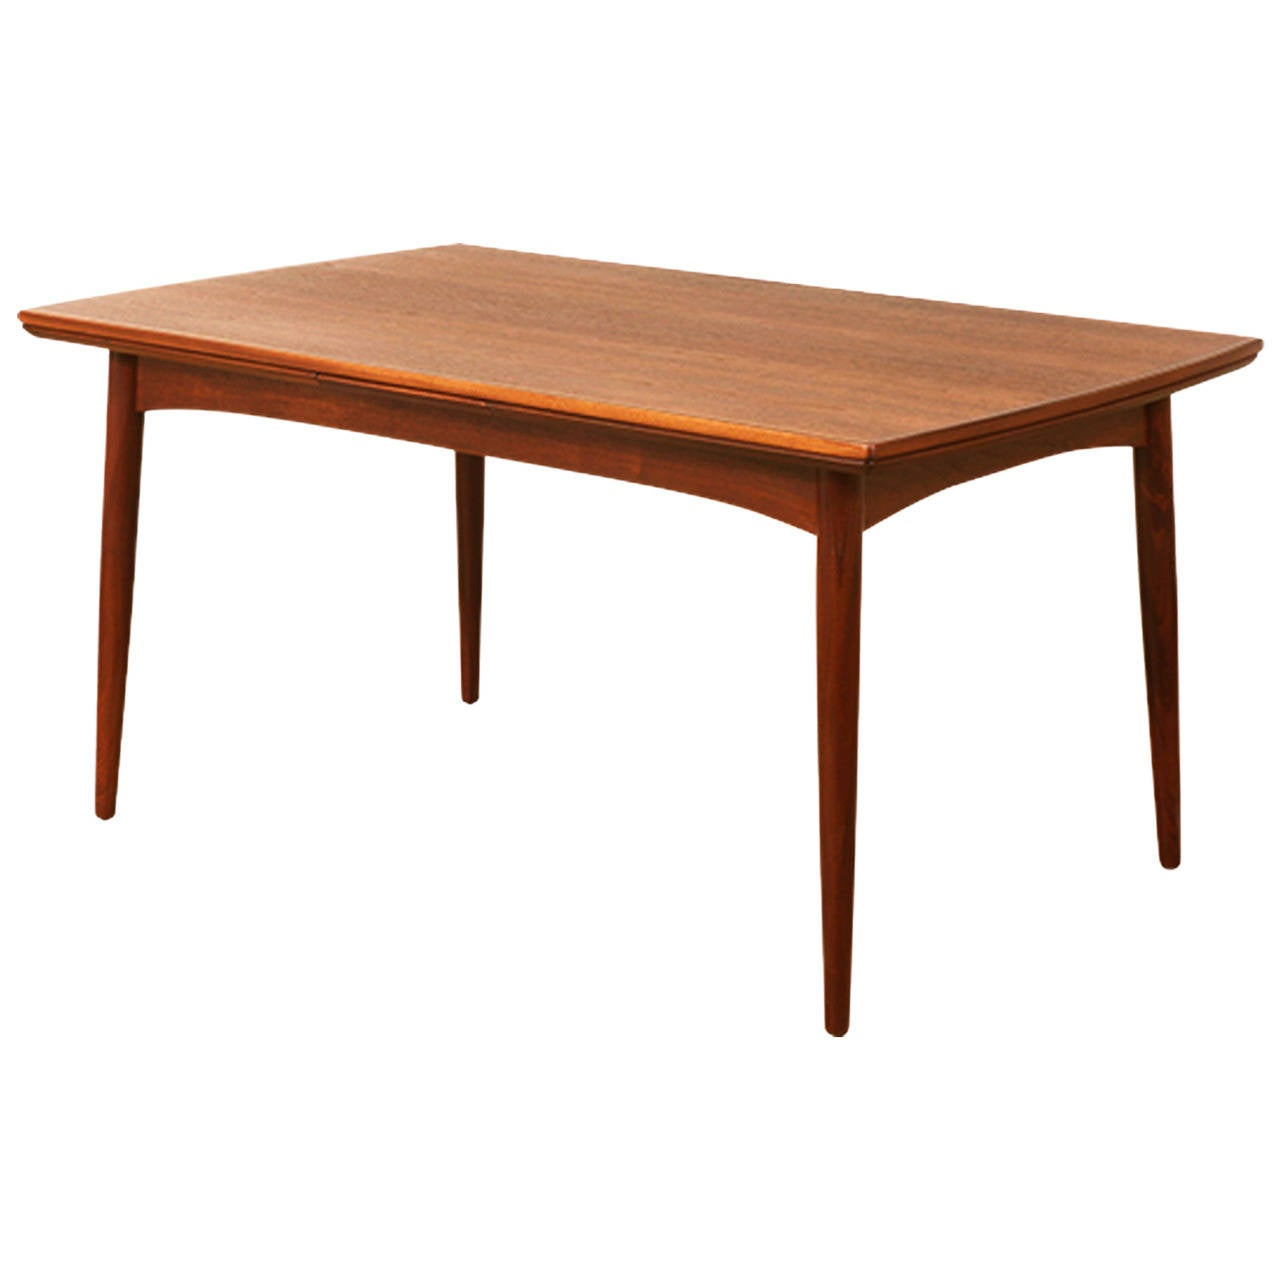 Danish modern walnut draw leaf dining table at 1stdibs for Danish modern dining room table